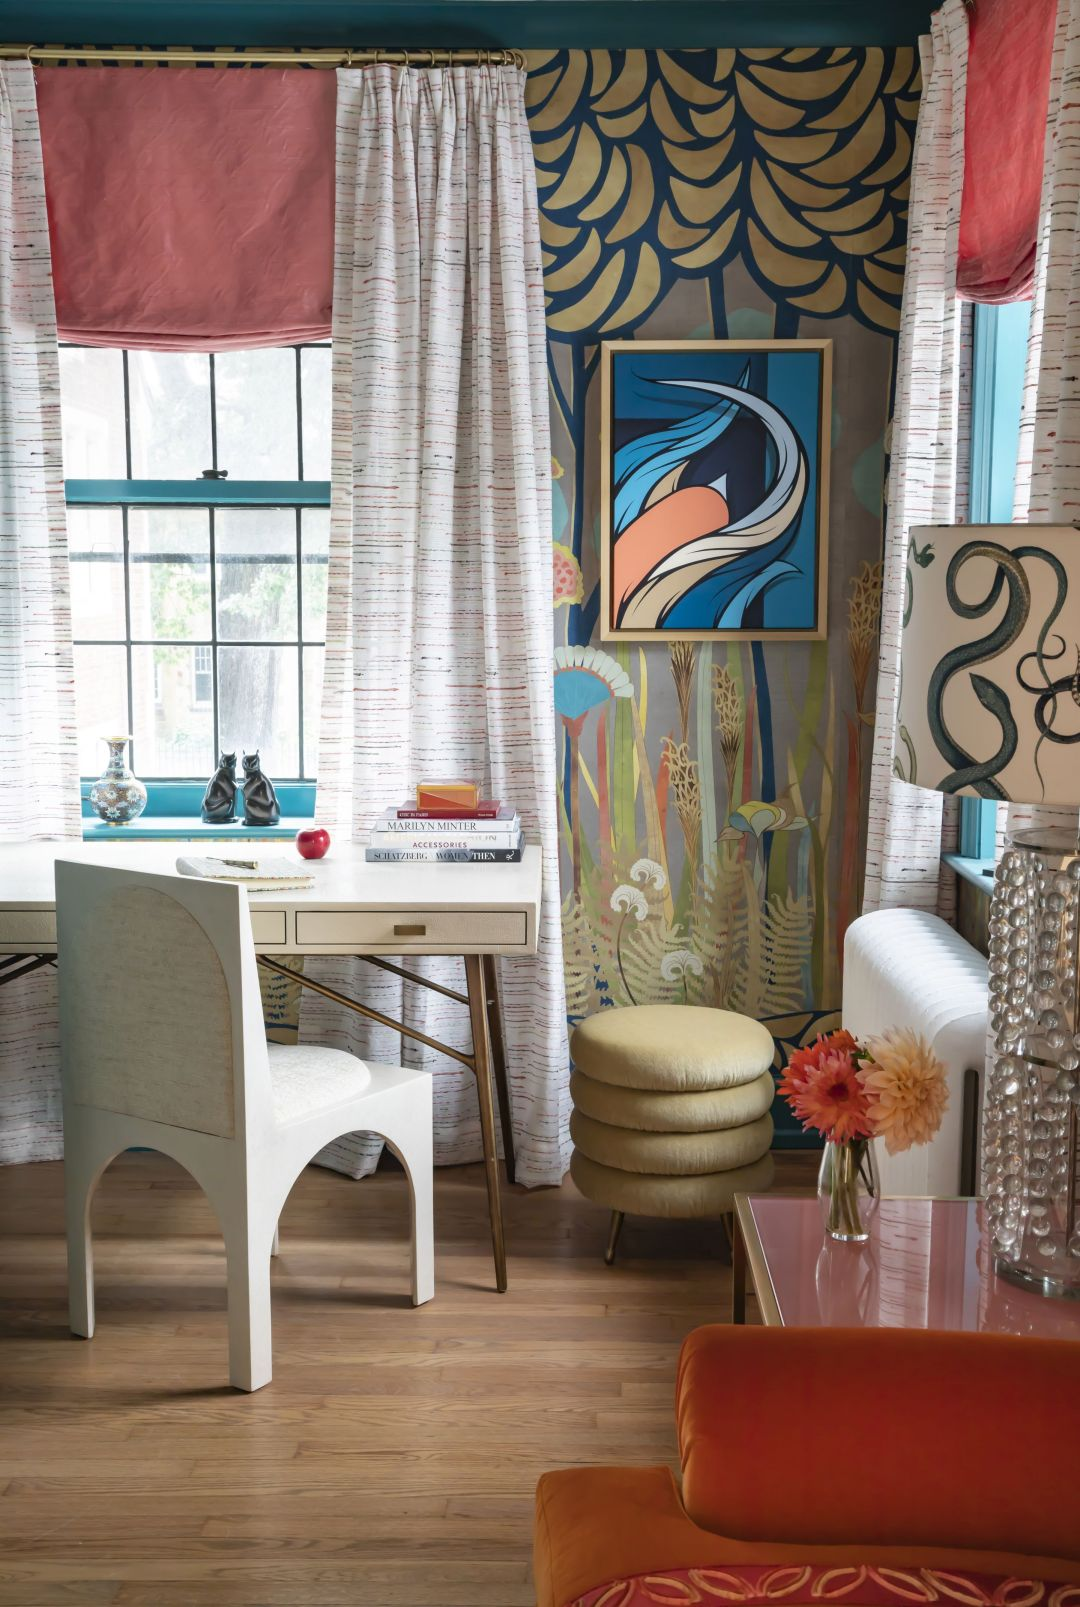 Courtney-McLeod-RMLID-JL-Showhouse_26 Tips for Adding Color and Pattern to a Room from a Louisiana Native